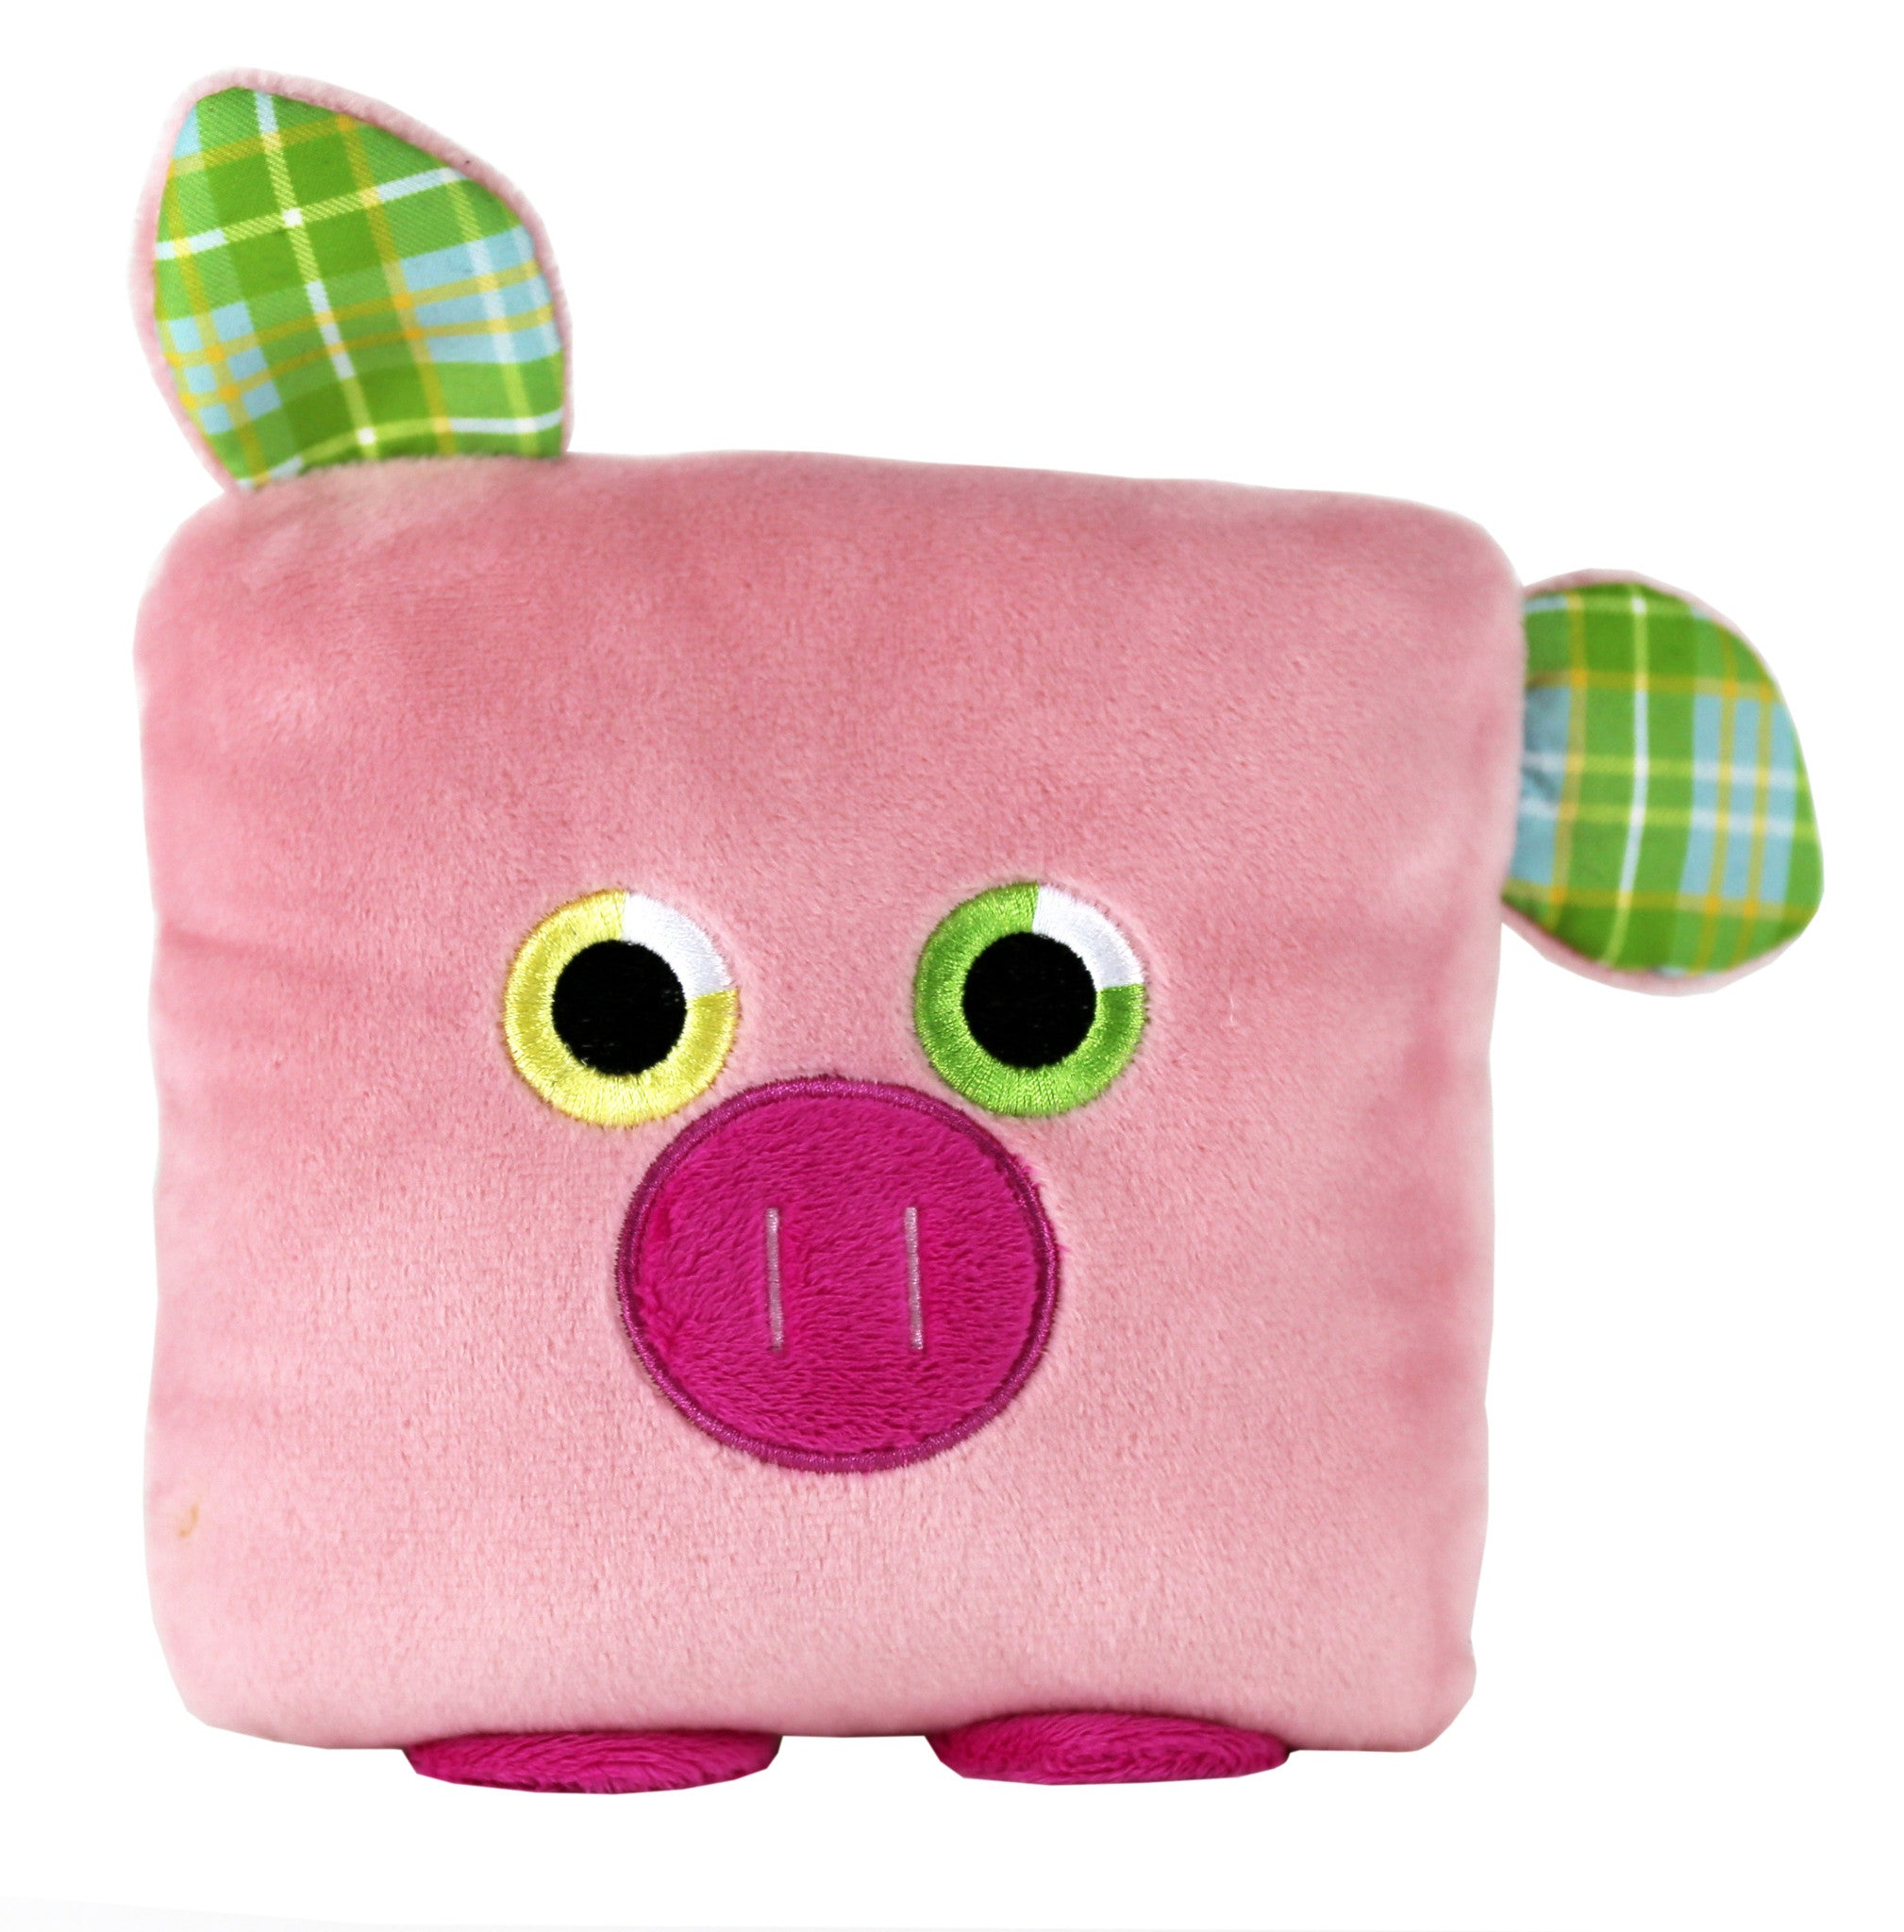 Plush toy pig stuffed animal with a useful back pocket